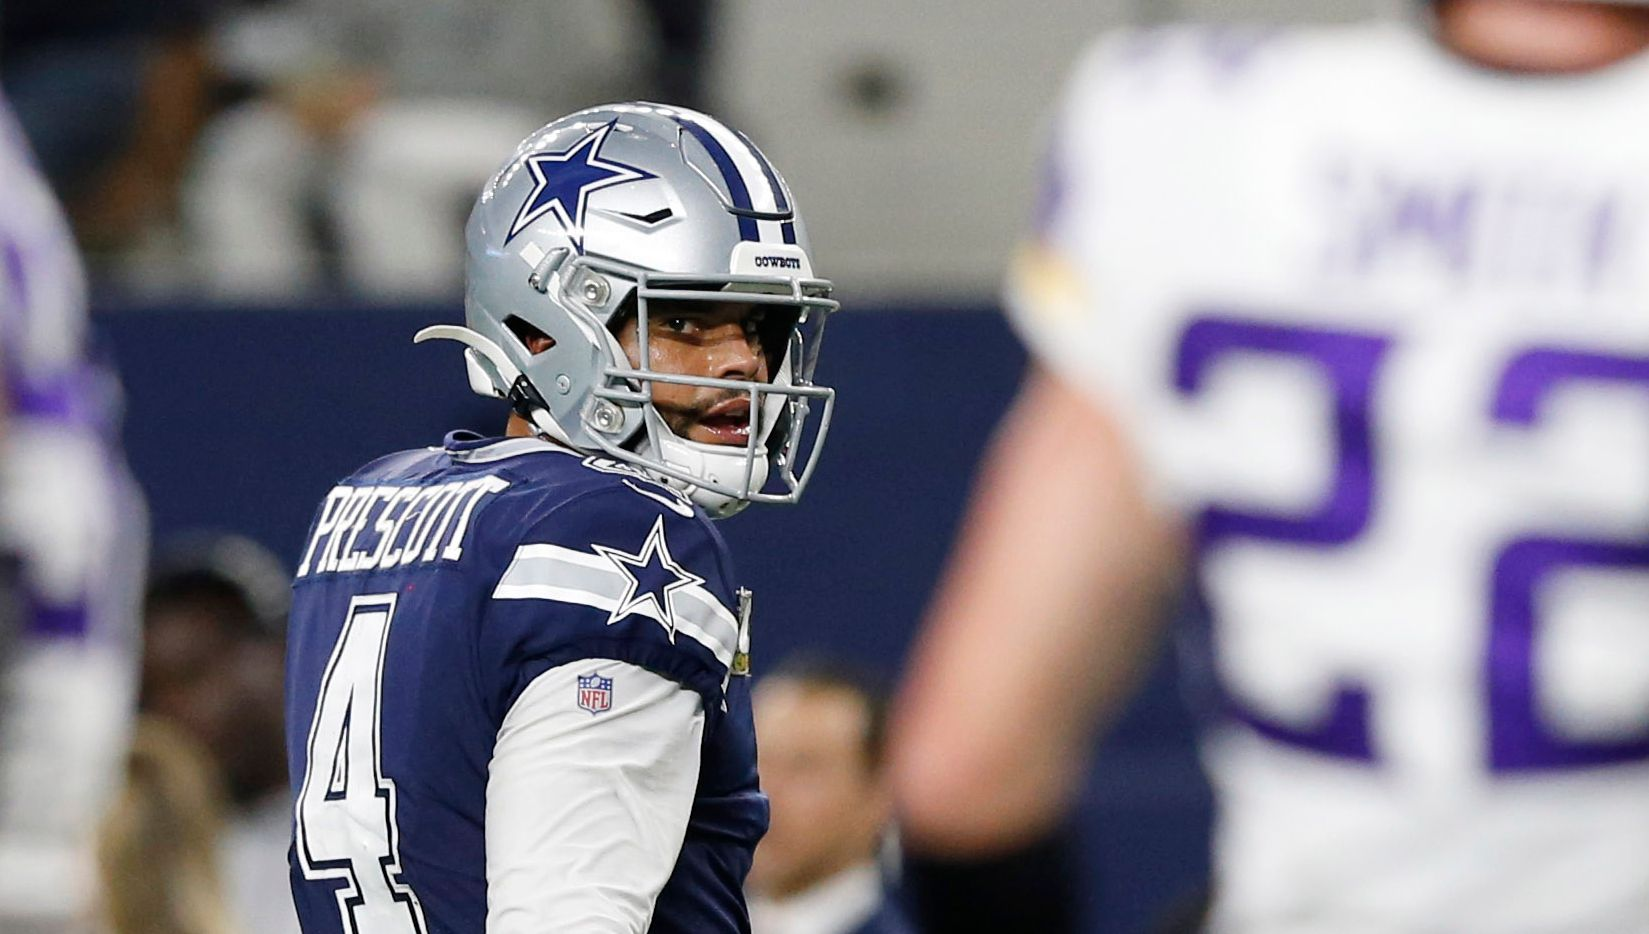 Dallas Cowboys quarterback Dak Prescott (4) and Minnesota Vikings outside linebacker Anthony Barr (55) share words after the Cowboys were stopped on third down during the second half of play at AT&T Stadium in Arlington, Texas on Sunday, November 10, 2019.